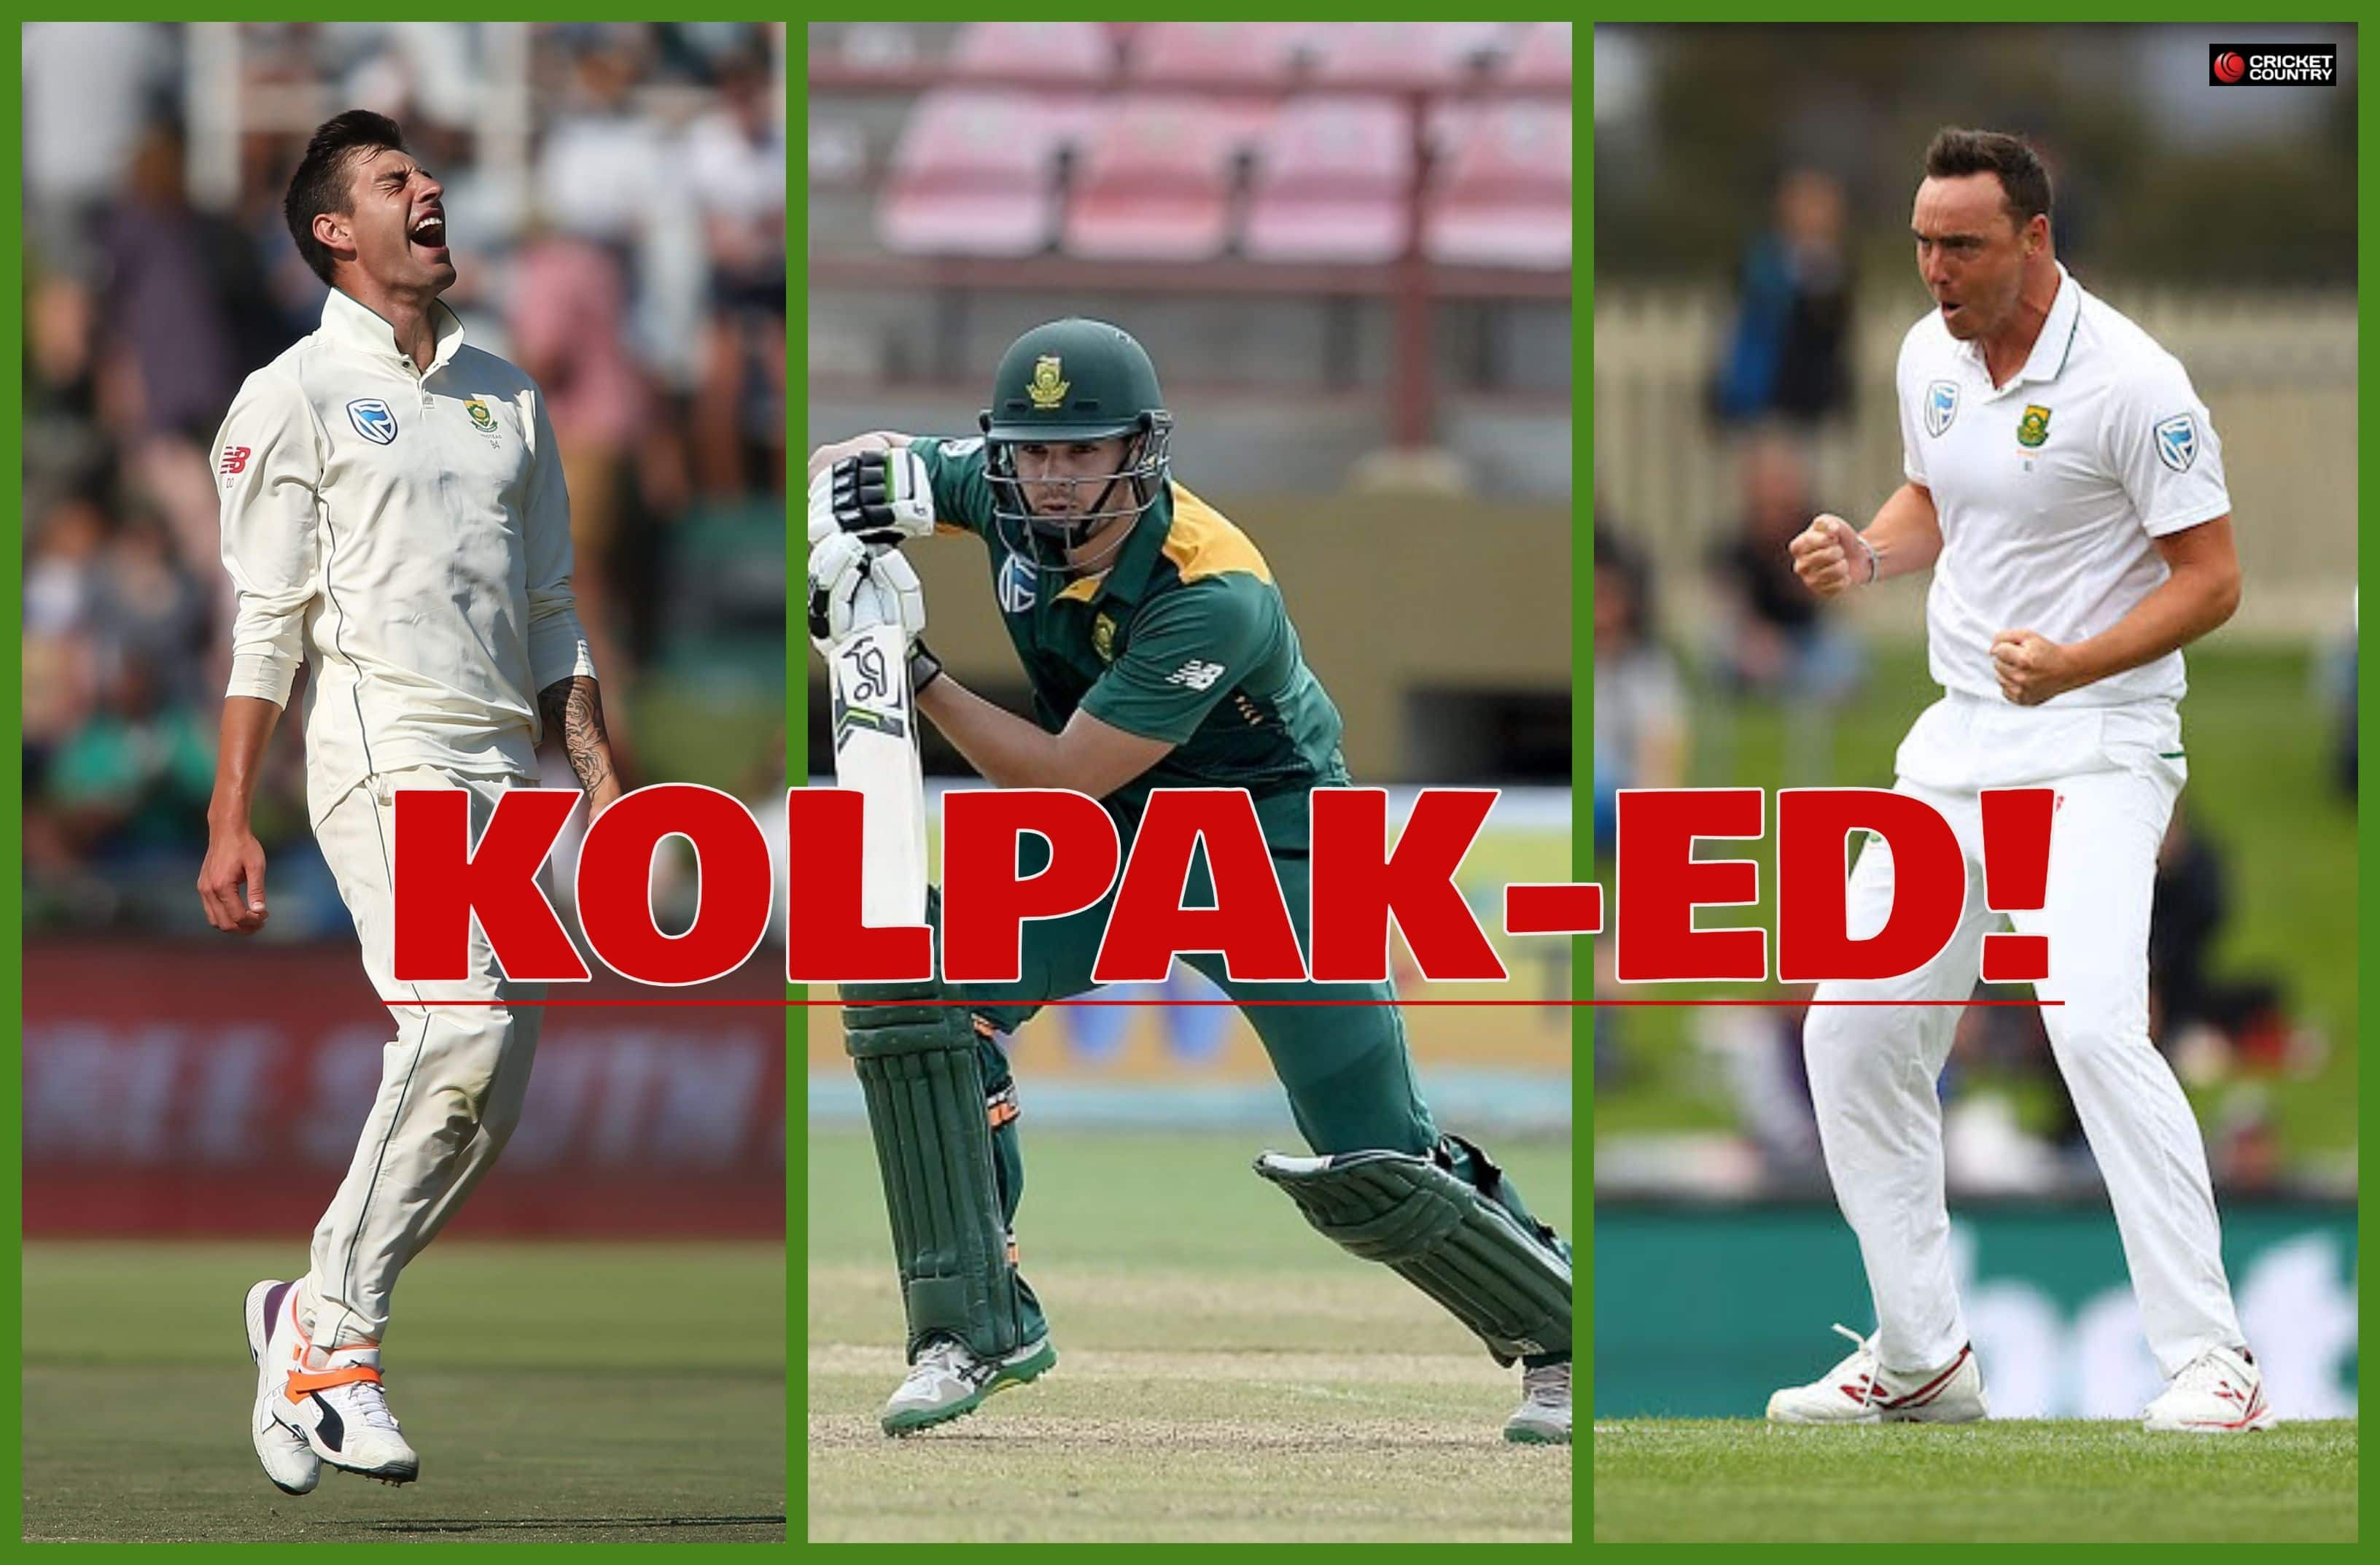 Kolpak: The biggest threat to South African cricket